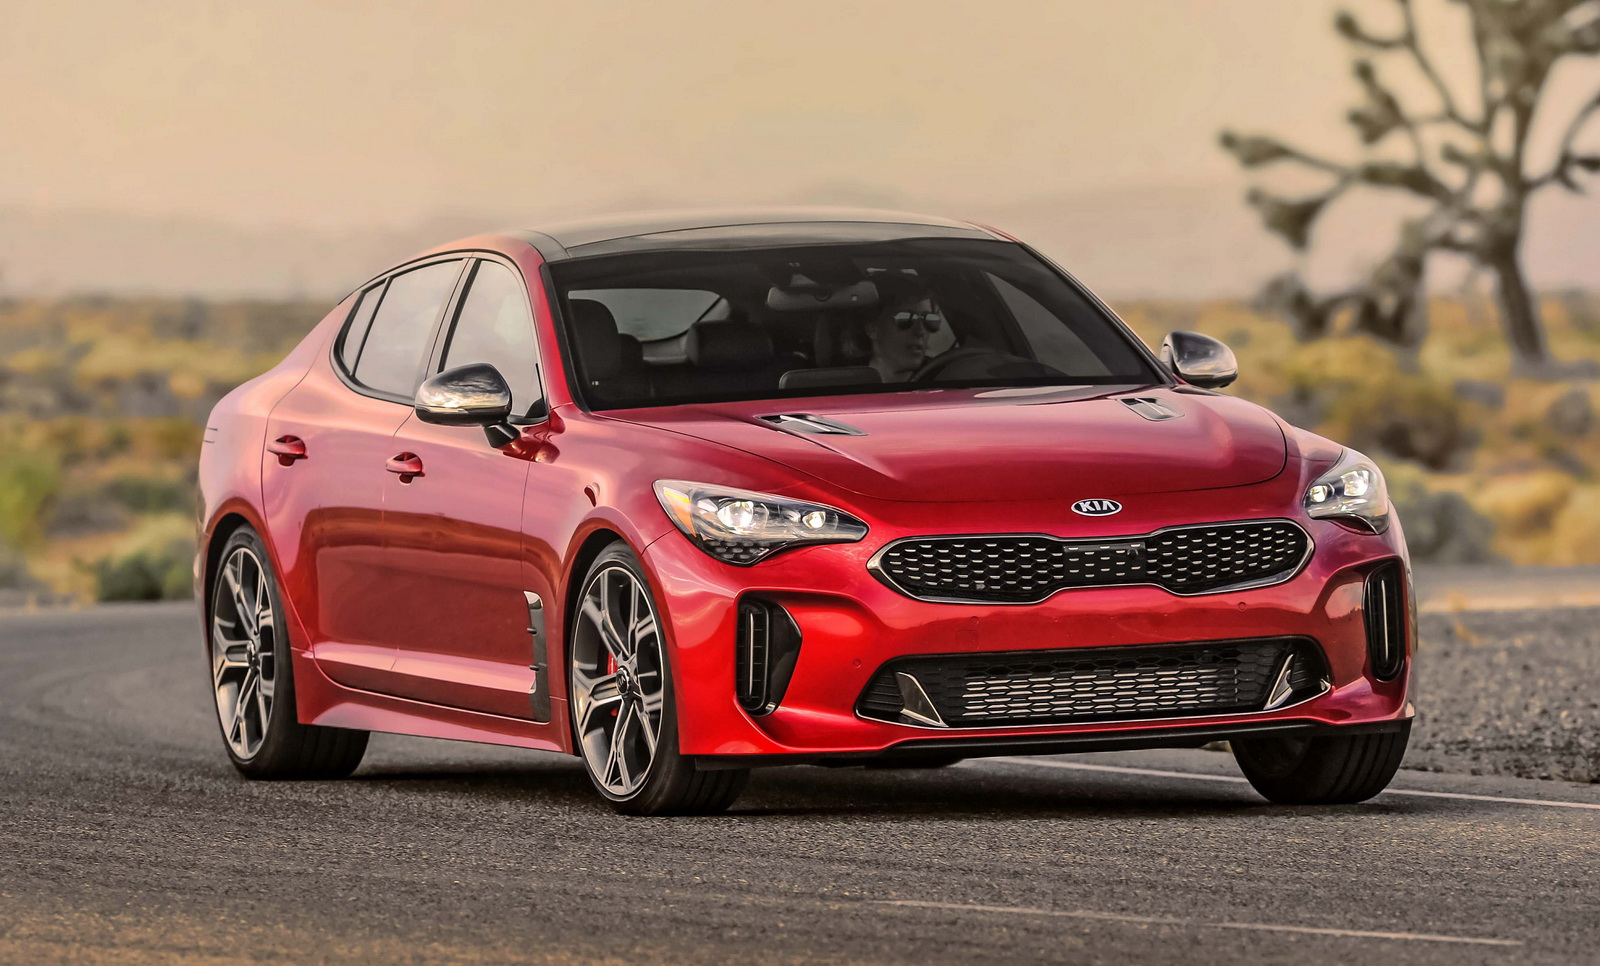 brand motors leases new from offers kia acquisition rebates signing include lease specials kias registration are tax on com commonwealth all cars miles military per due at sales months boston year